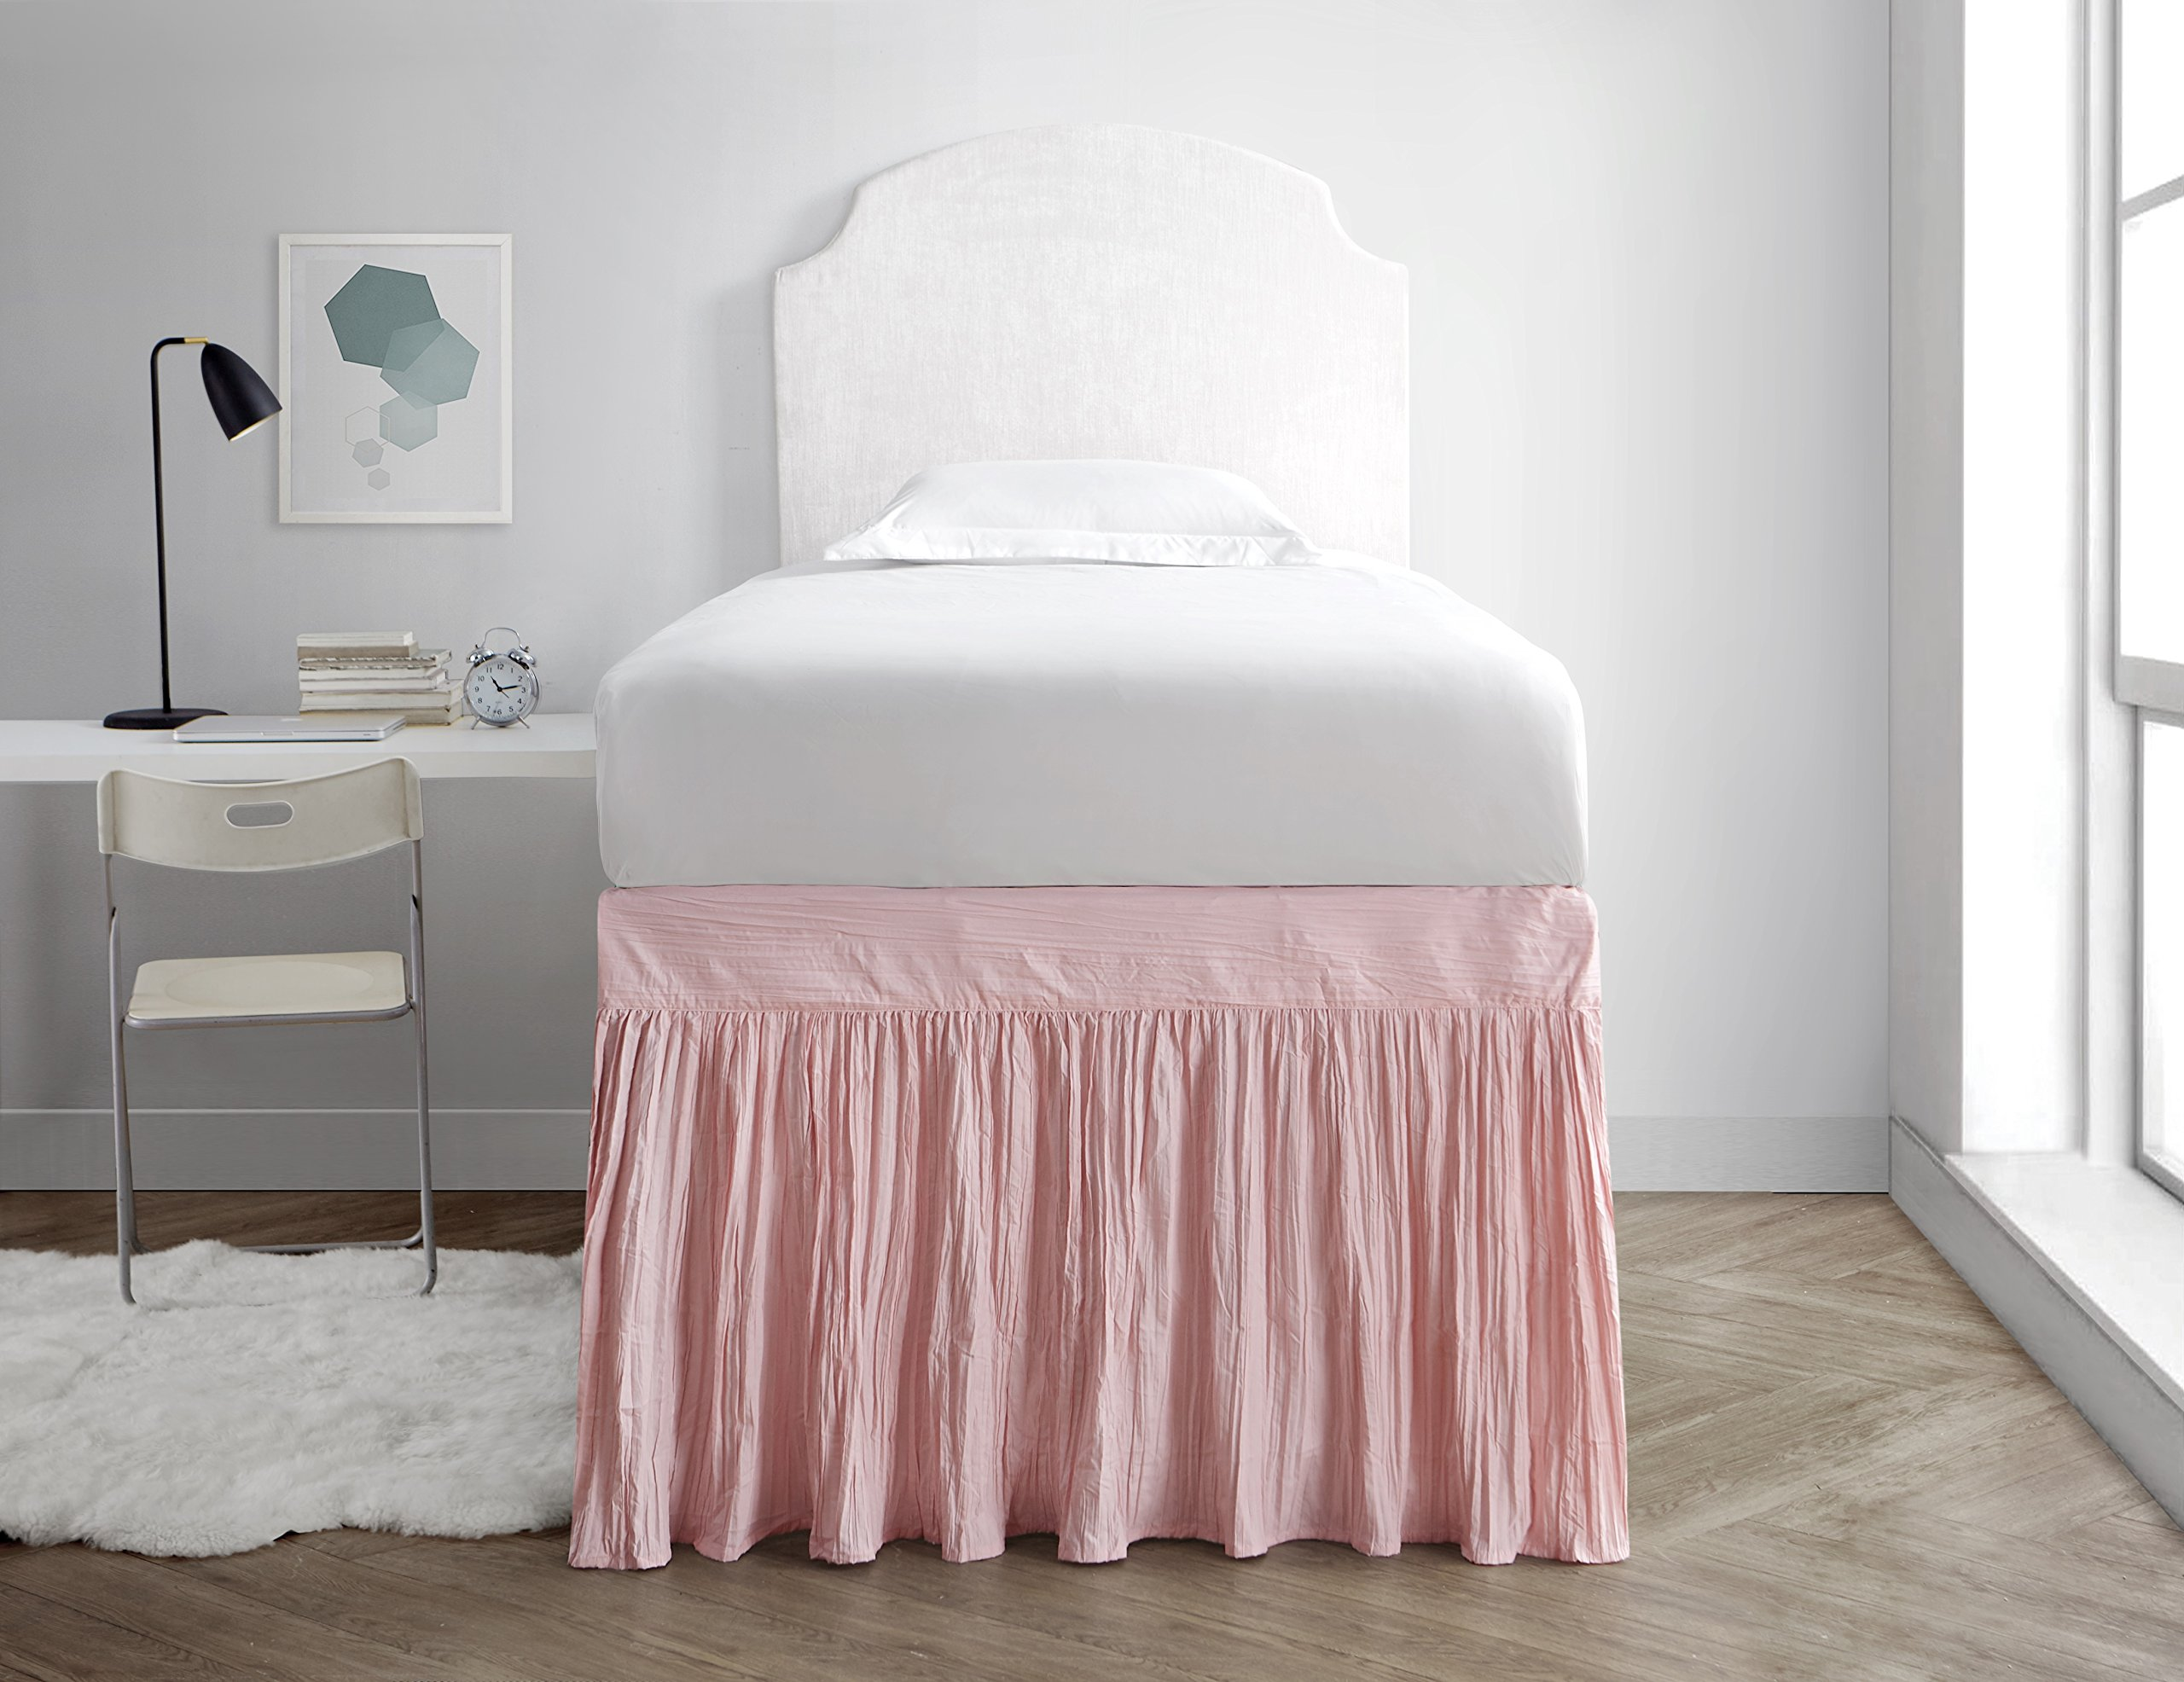 Crinkle Dorm Sized Bed Skirt Panel with Ties (1 Panel) - Rose Quartz